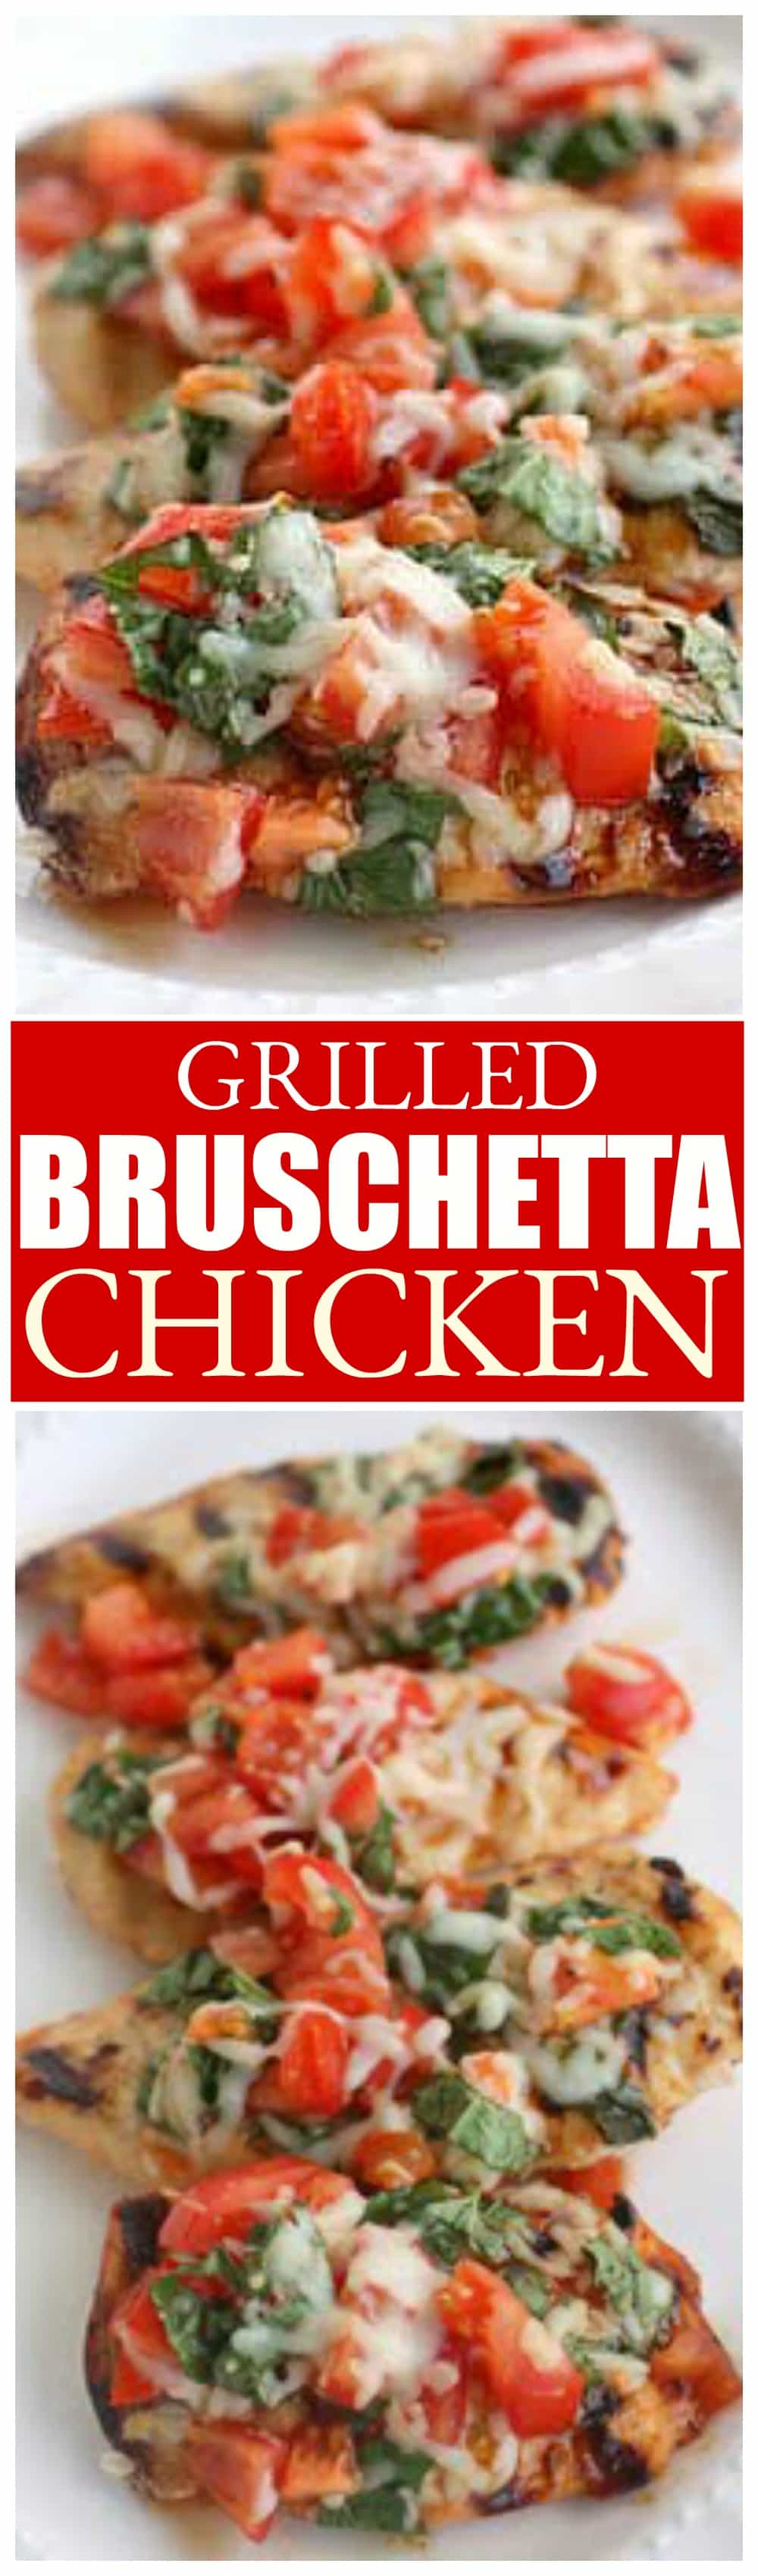 This Grilled Chicken Bruschetta is one of our healthy go-to meals topped with marinated tomatoes, basil, and cheese. the-girl-who-ate-everything.com